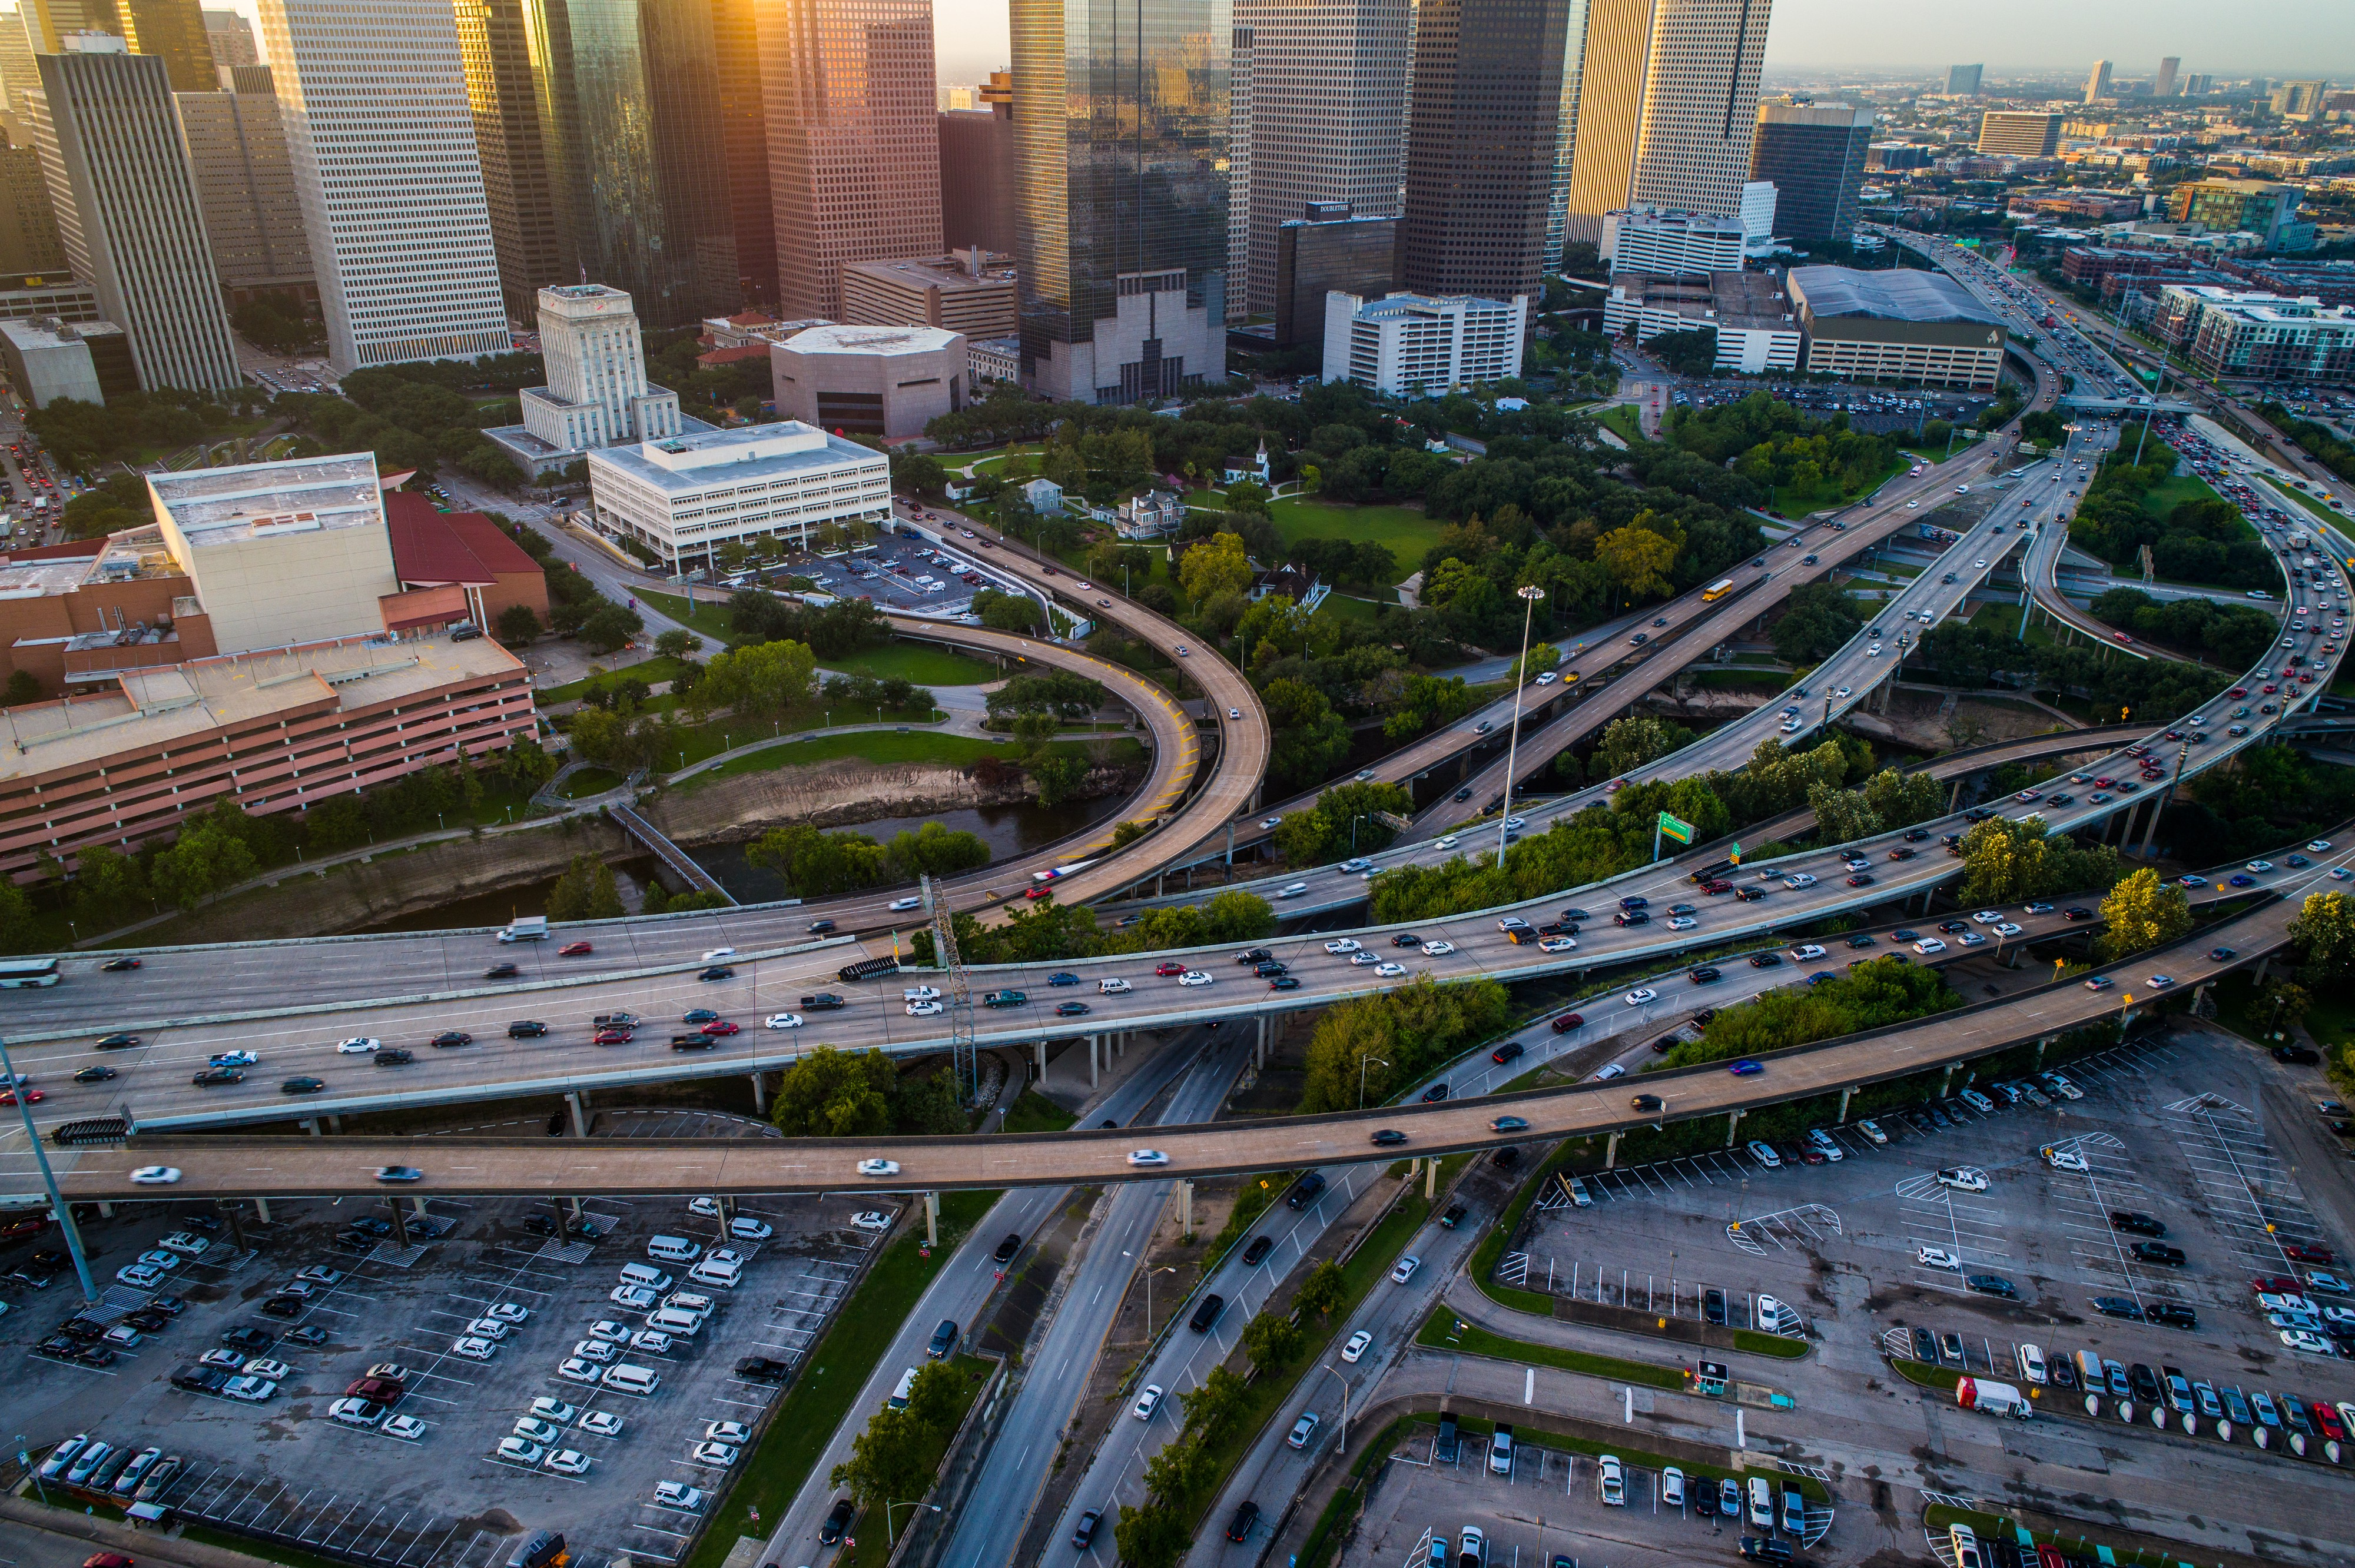 Small Sensors Hyperlocal Data And A High Tech Look Into Houston S Air Pollution By Environmental Defense Fund The Fourth Wave Medium